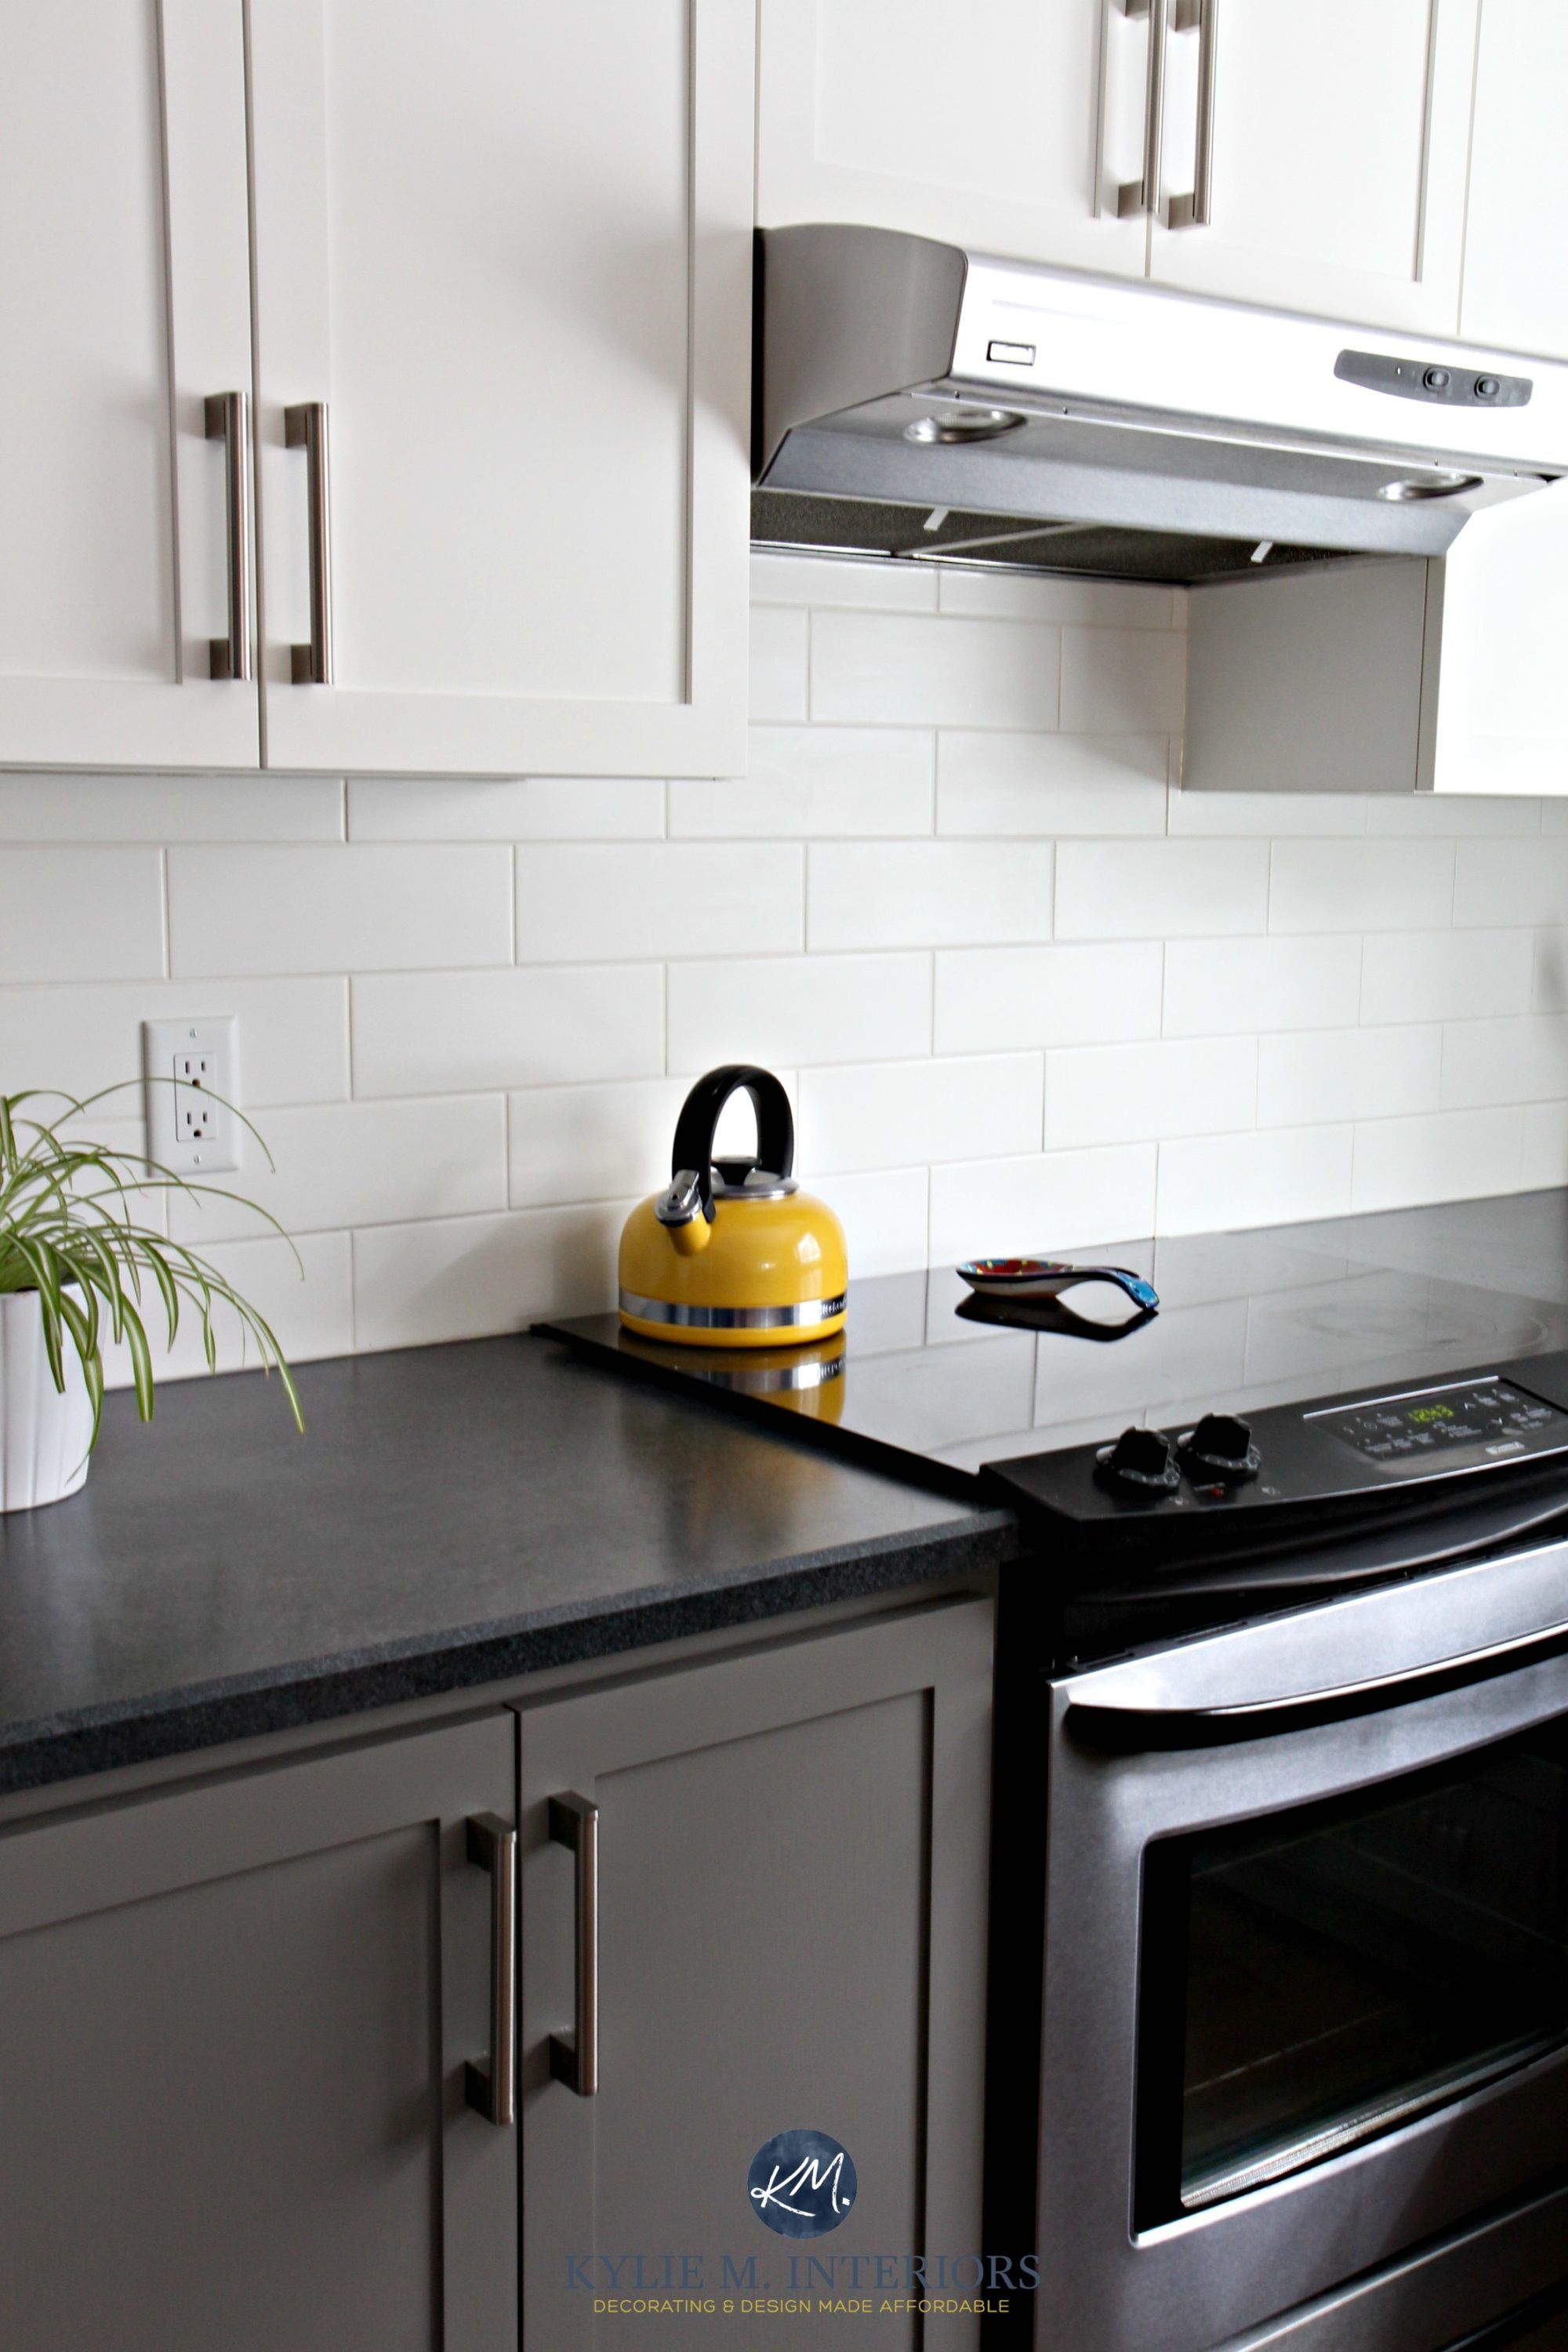 Pin by Sandy Rogan on Kitchen remodel | Painting kitchen ...